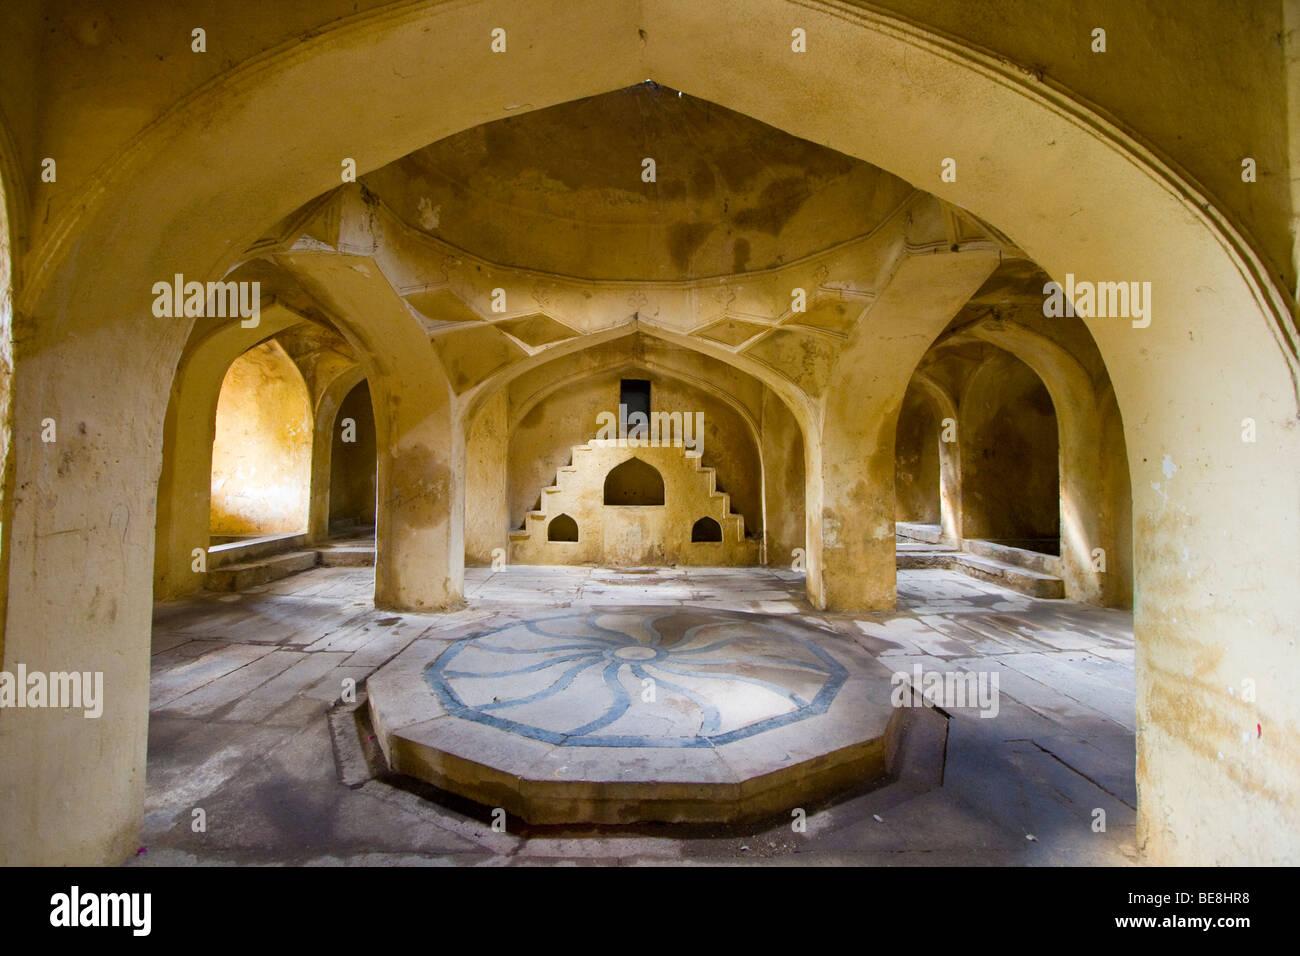 Hamam or Mortuary Chamber at Qutb Shahi Tomb in Golconda in Hyderabad India - Stock Image